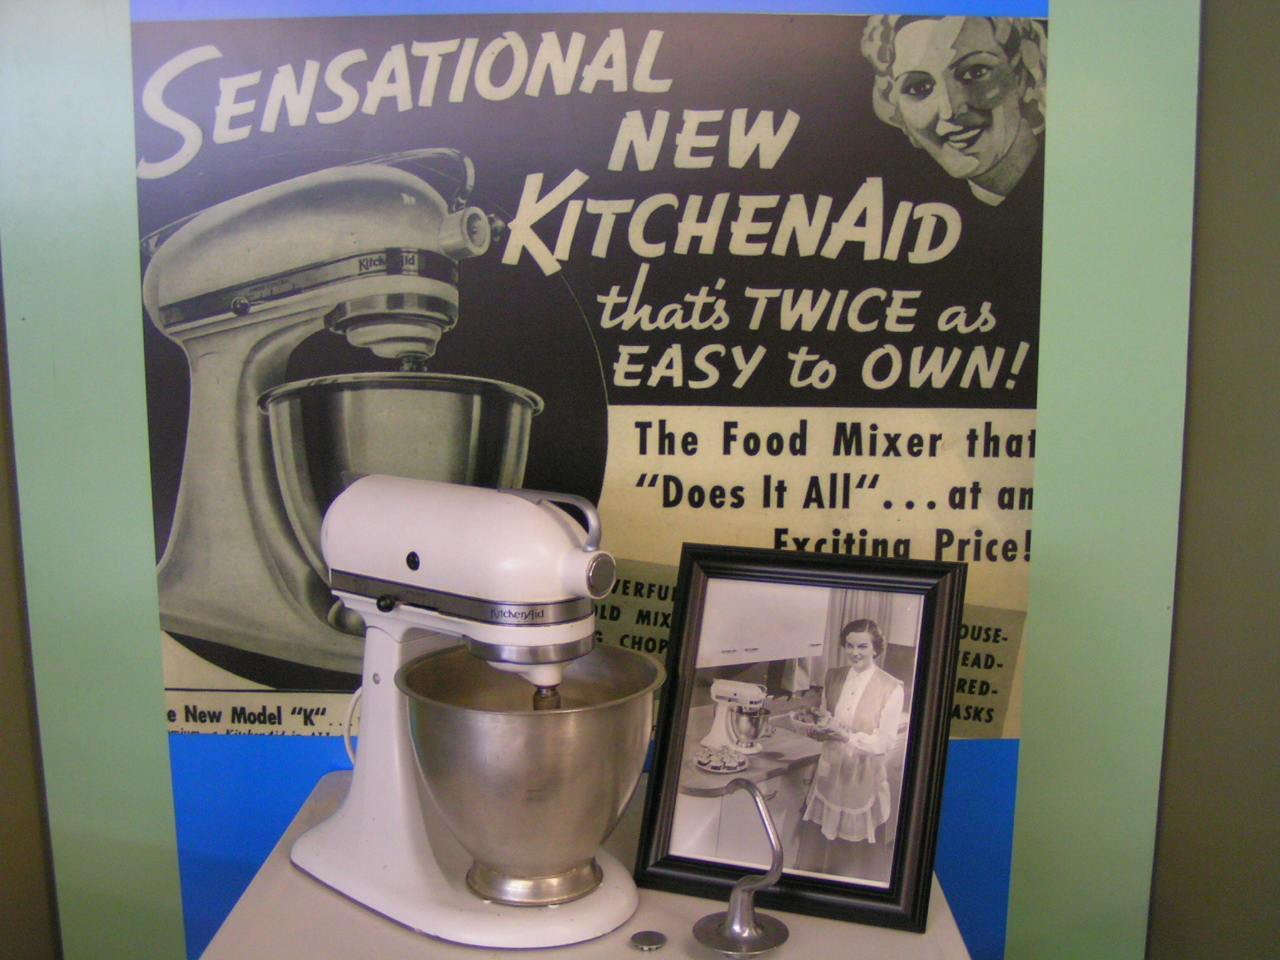 Remarkable KitchenAid Mixer Models 1280 x 960 · 708 kB · jpeg